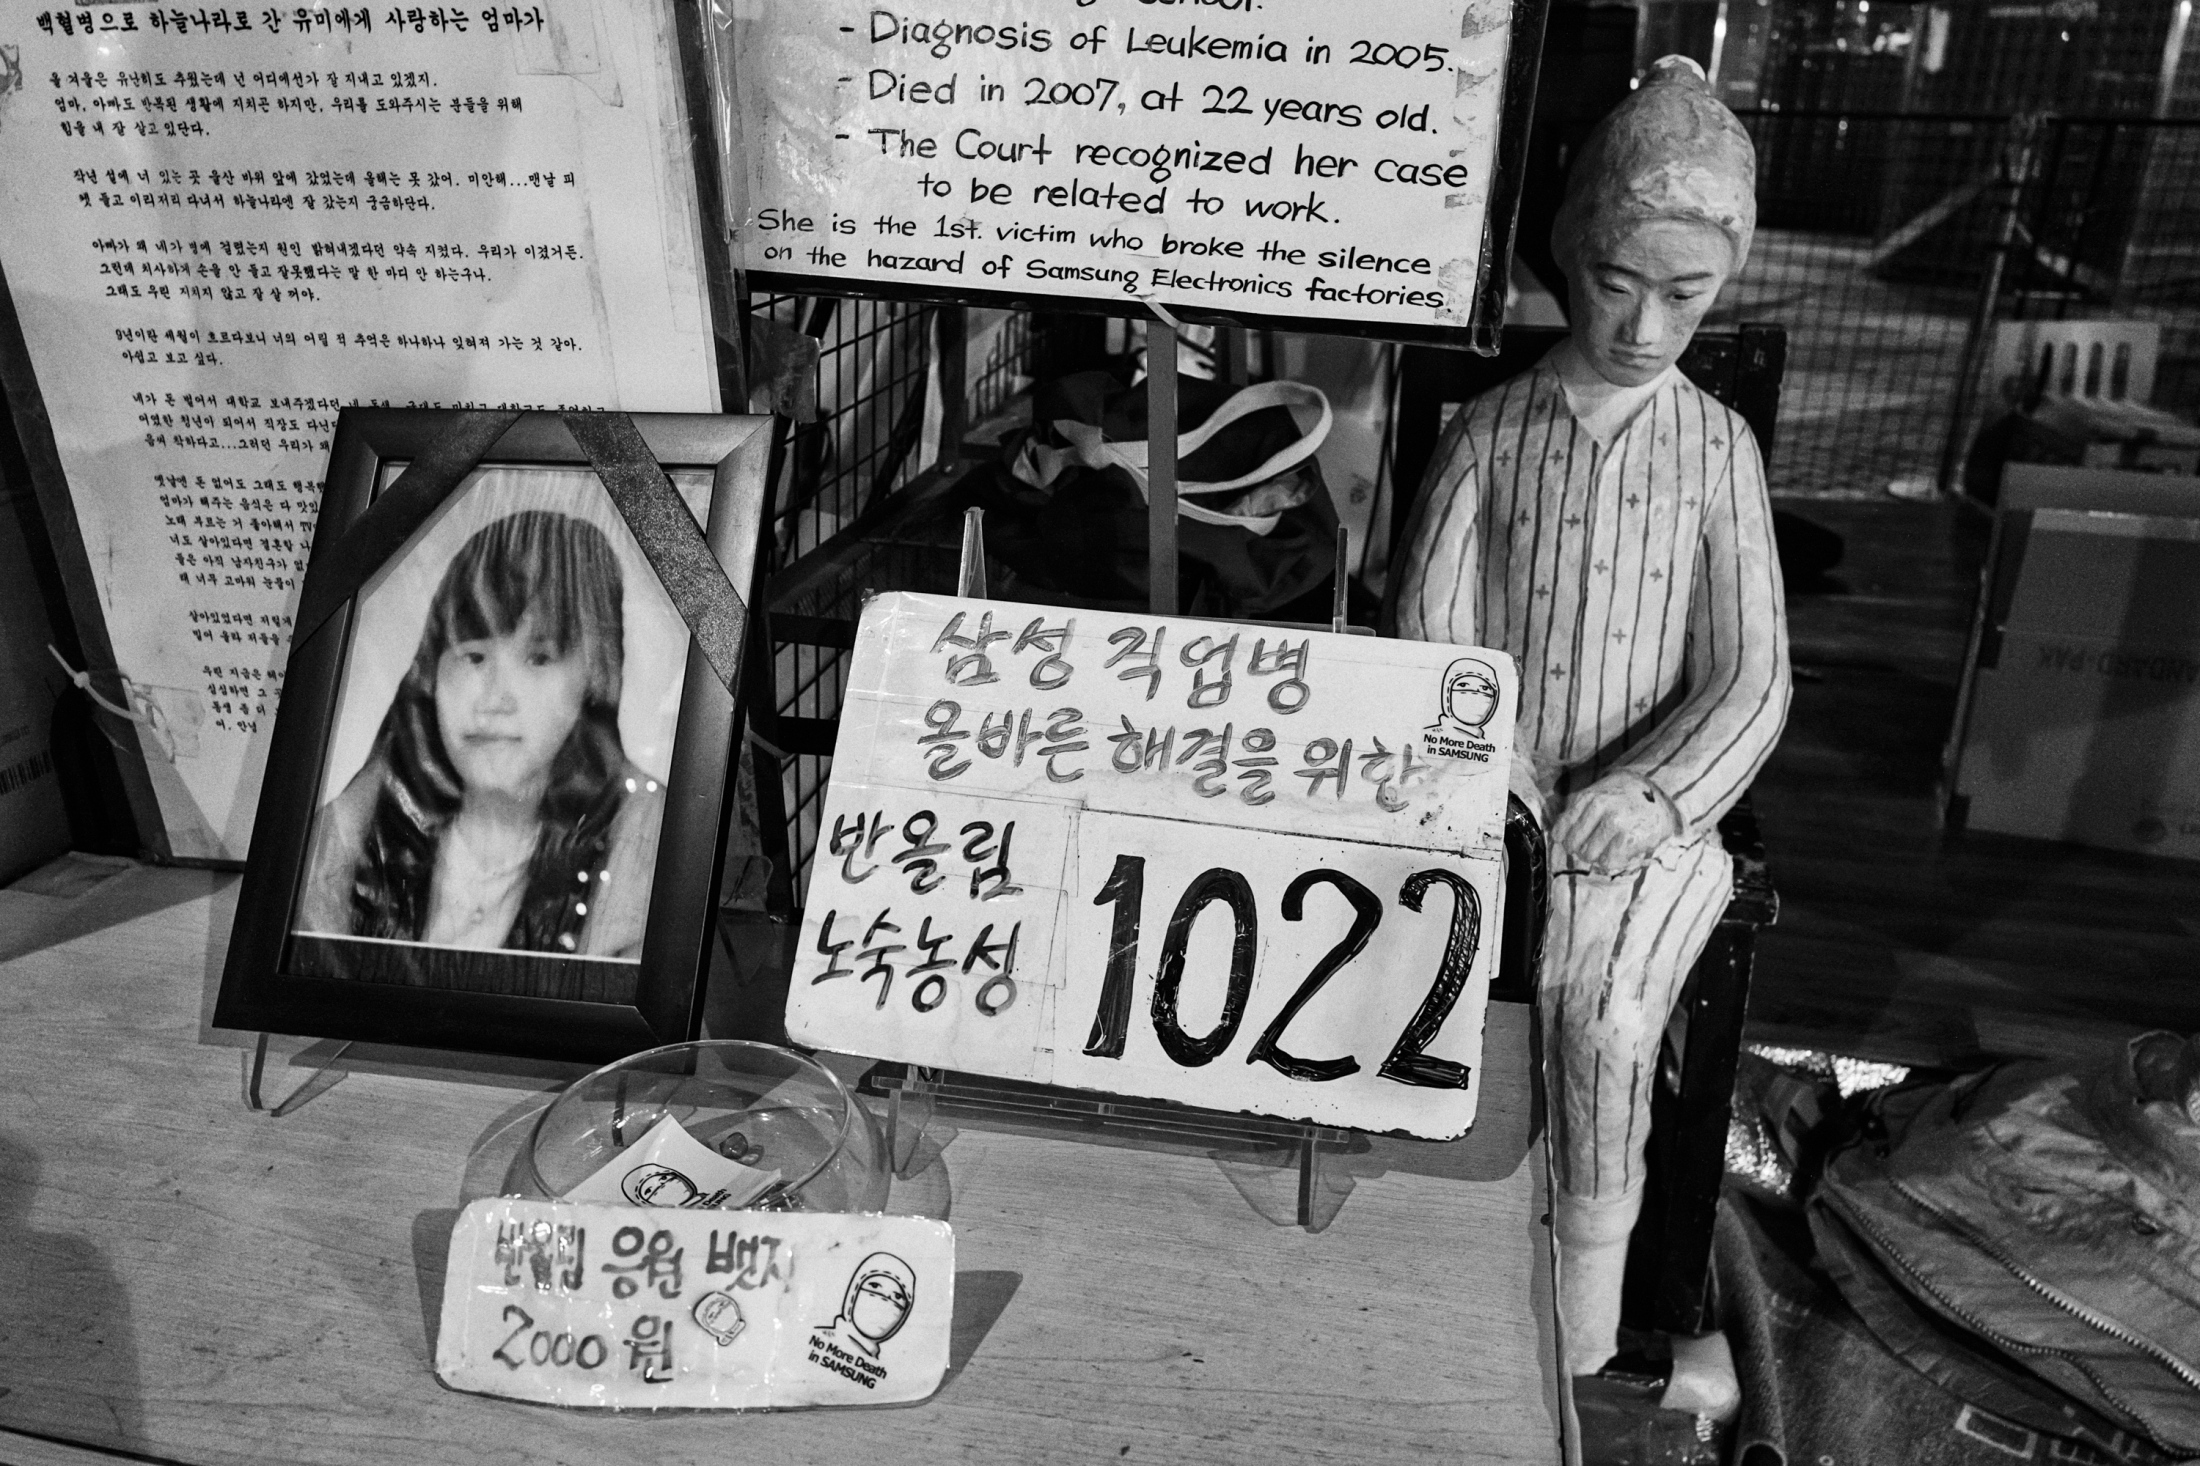 A portrait and a statue of the late Hwang Yu-mi is seen at a protest camp in front of Samsung Town Headquarters in Seoul, South Korea on Jul. 24, 2018.